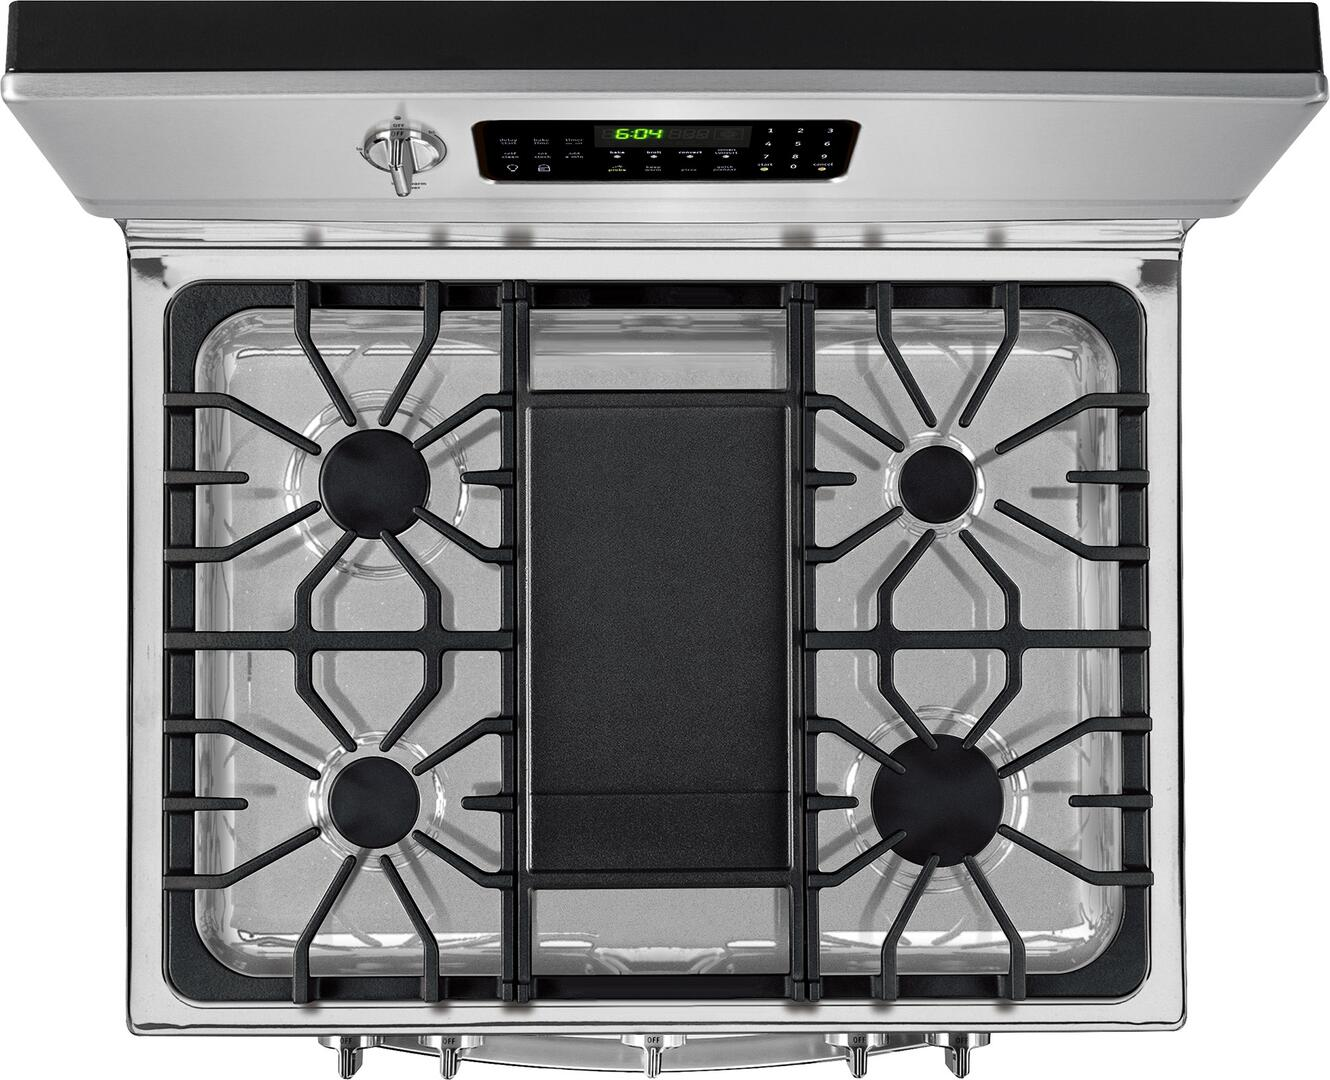 frigidaire gallery cooktop with griddle - Frigidaire Gallery Stove